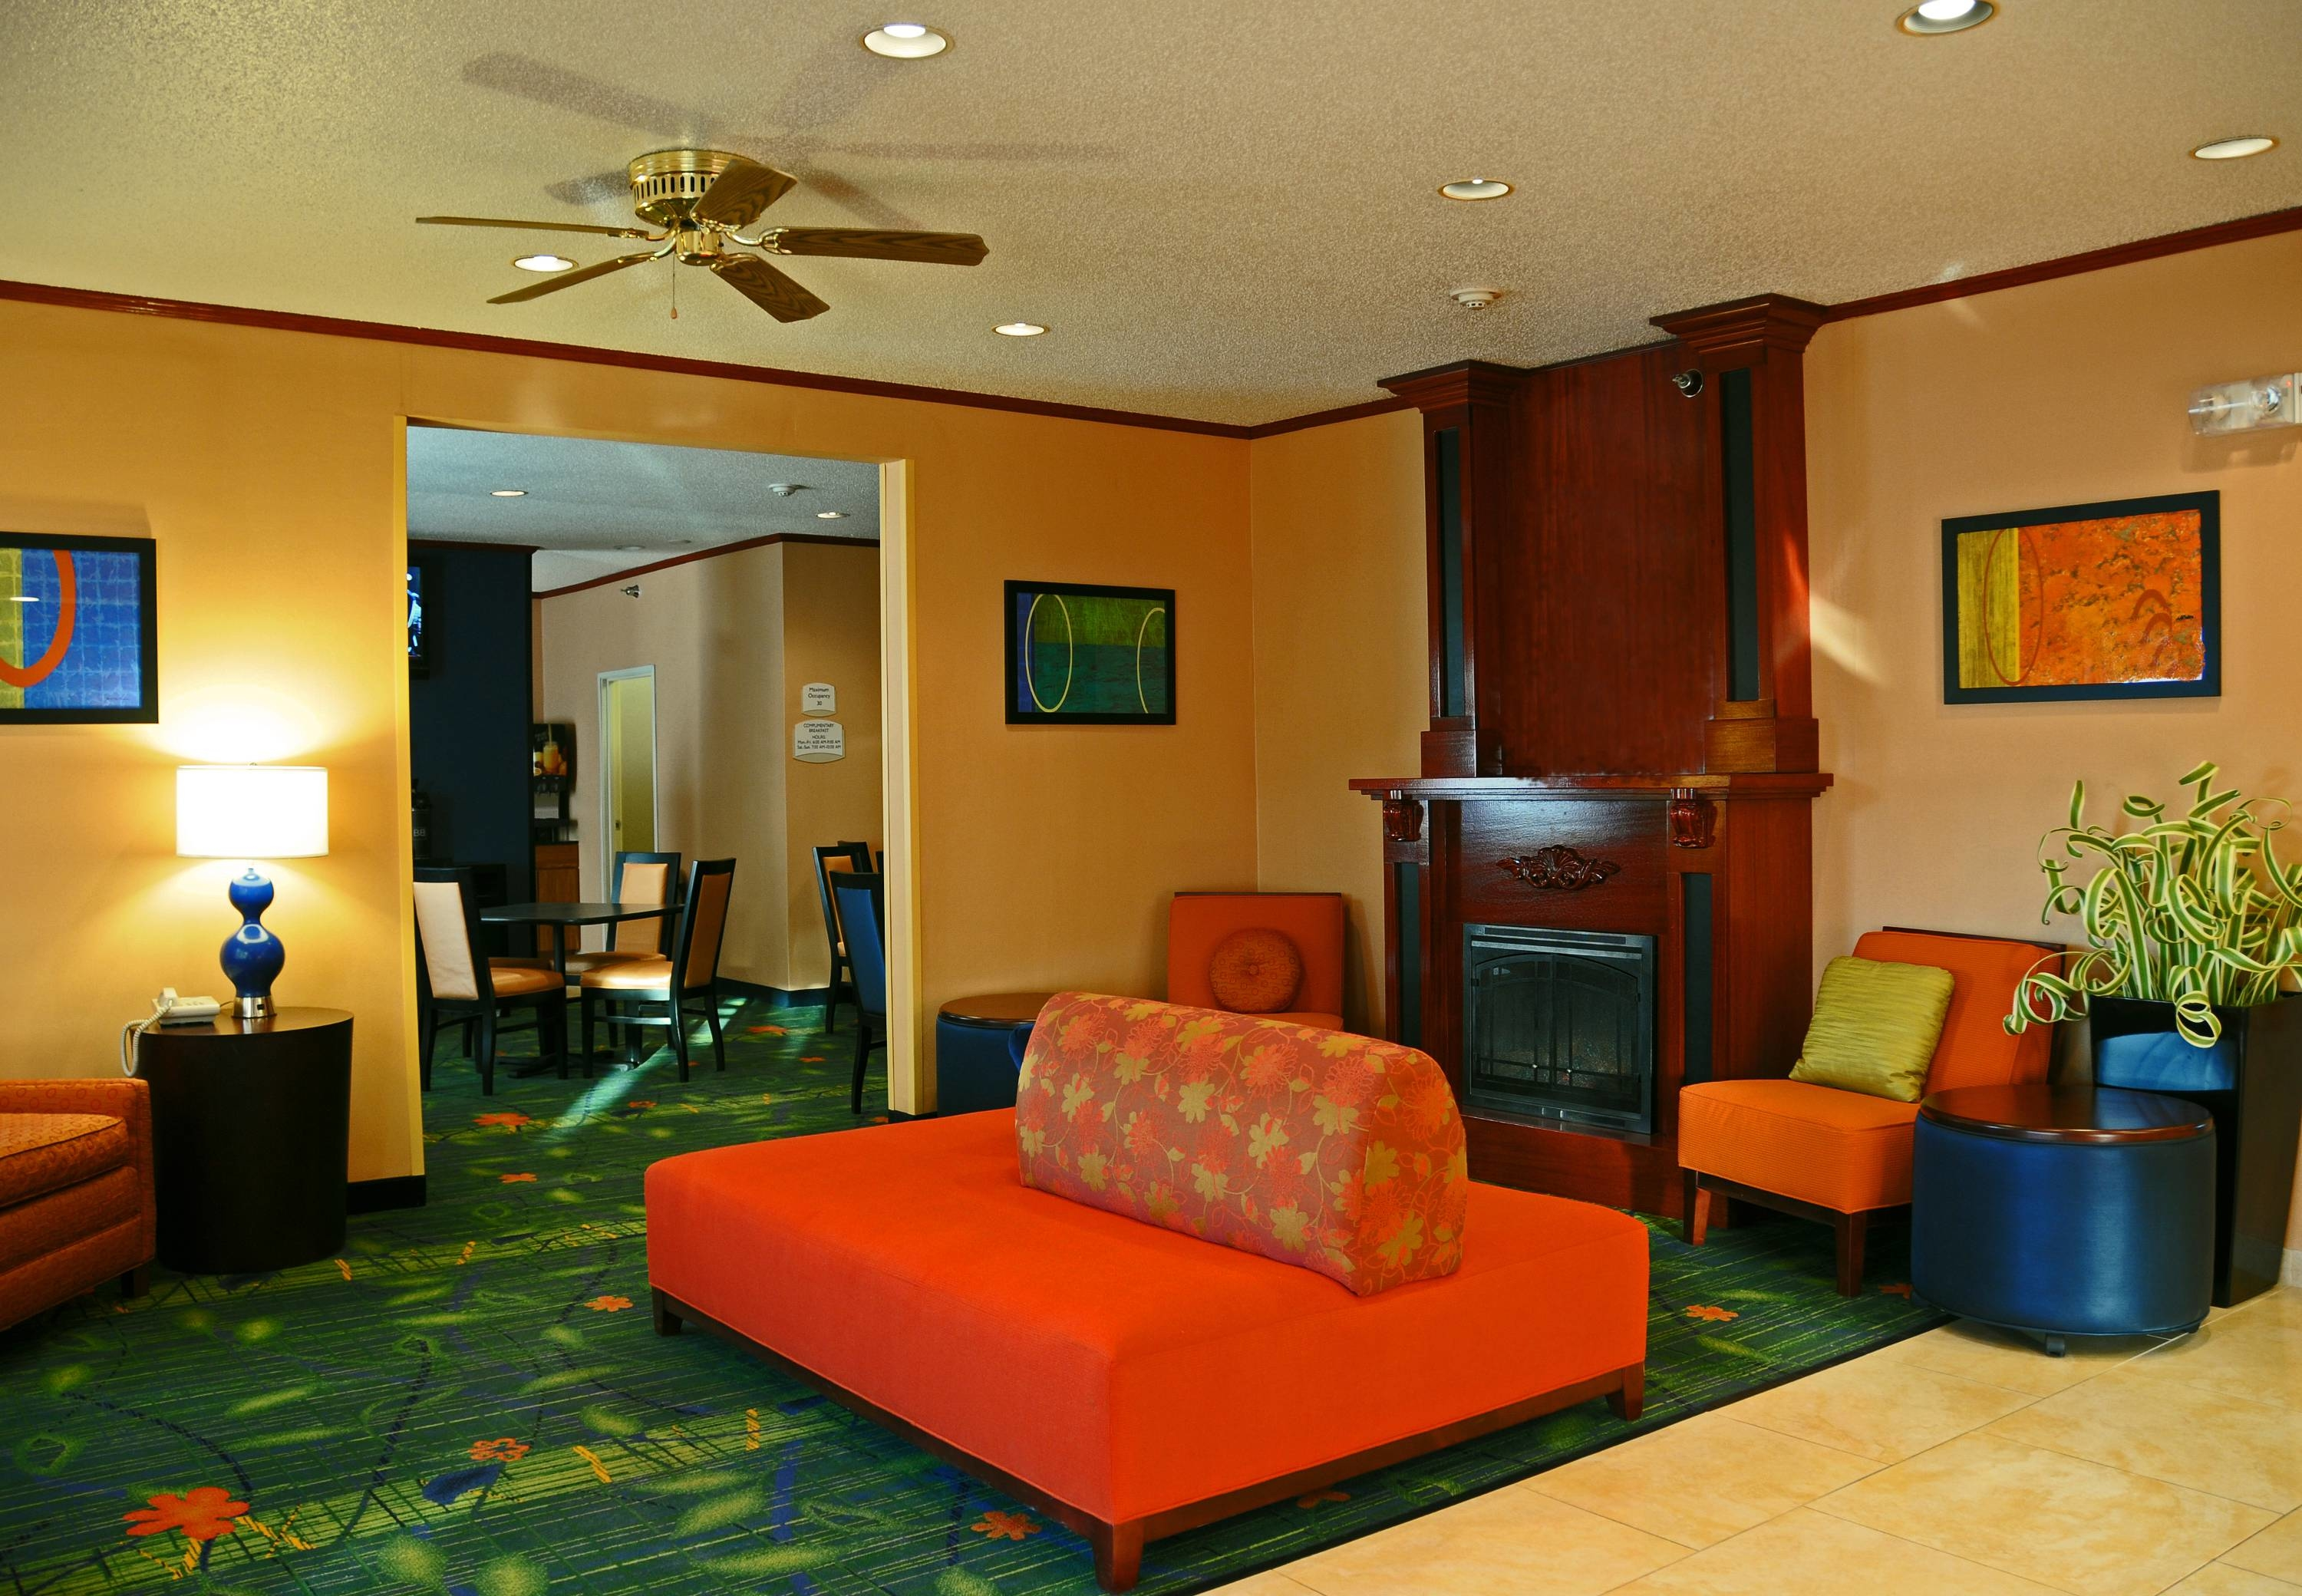 Fairfield Inn & Suites by Marriott Spearfish image 7